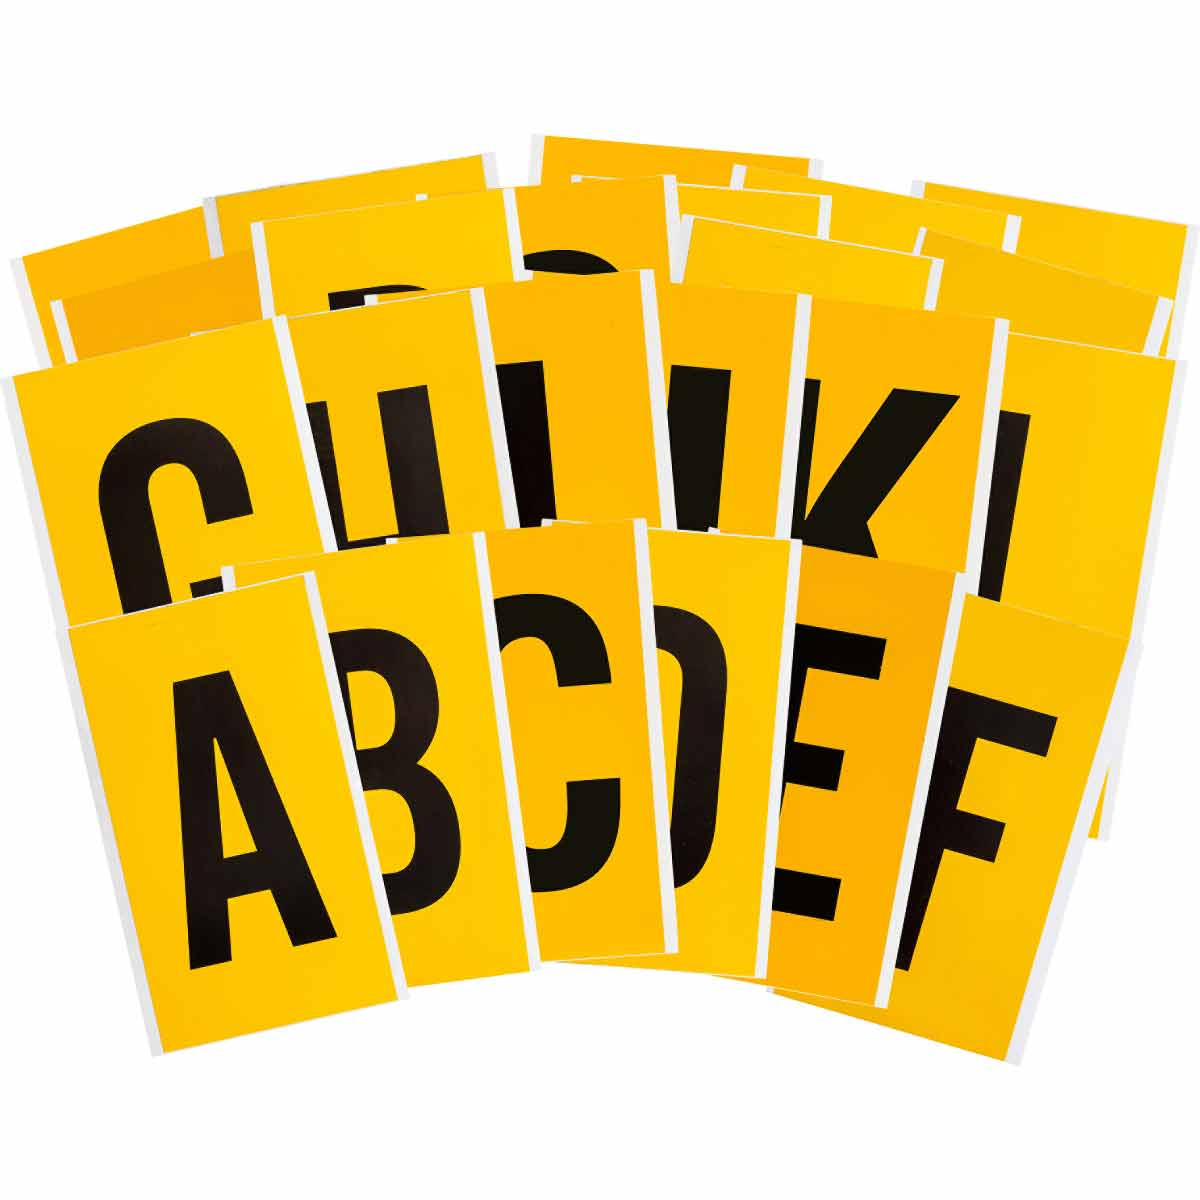 Brady® 97598 1570 Consecutive Non-Reflective Standard Letter Label Kit, Black A to Z Character, 6 in H, Yellow Background, B-946 Vinyl